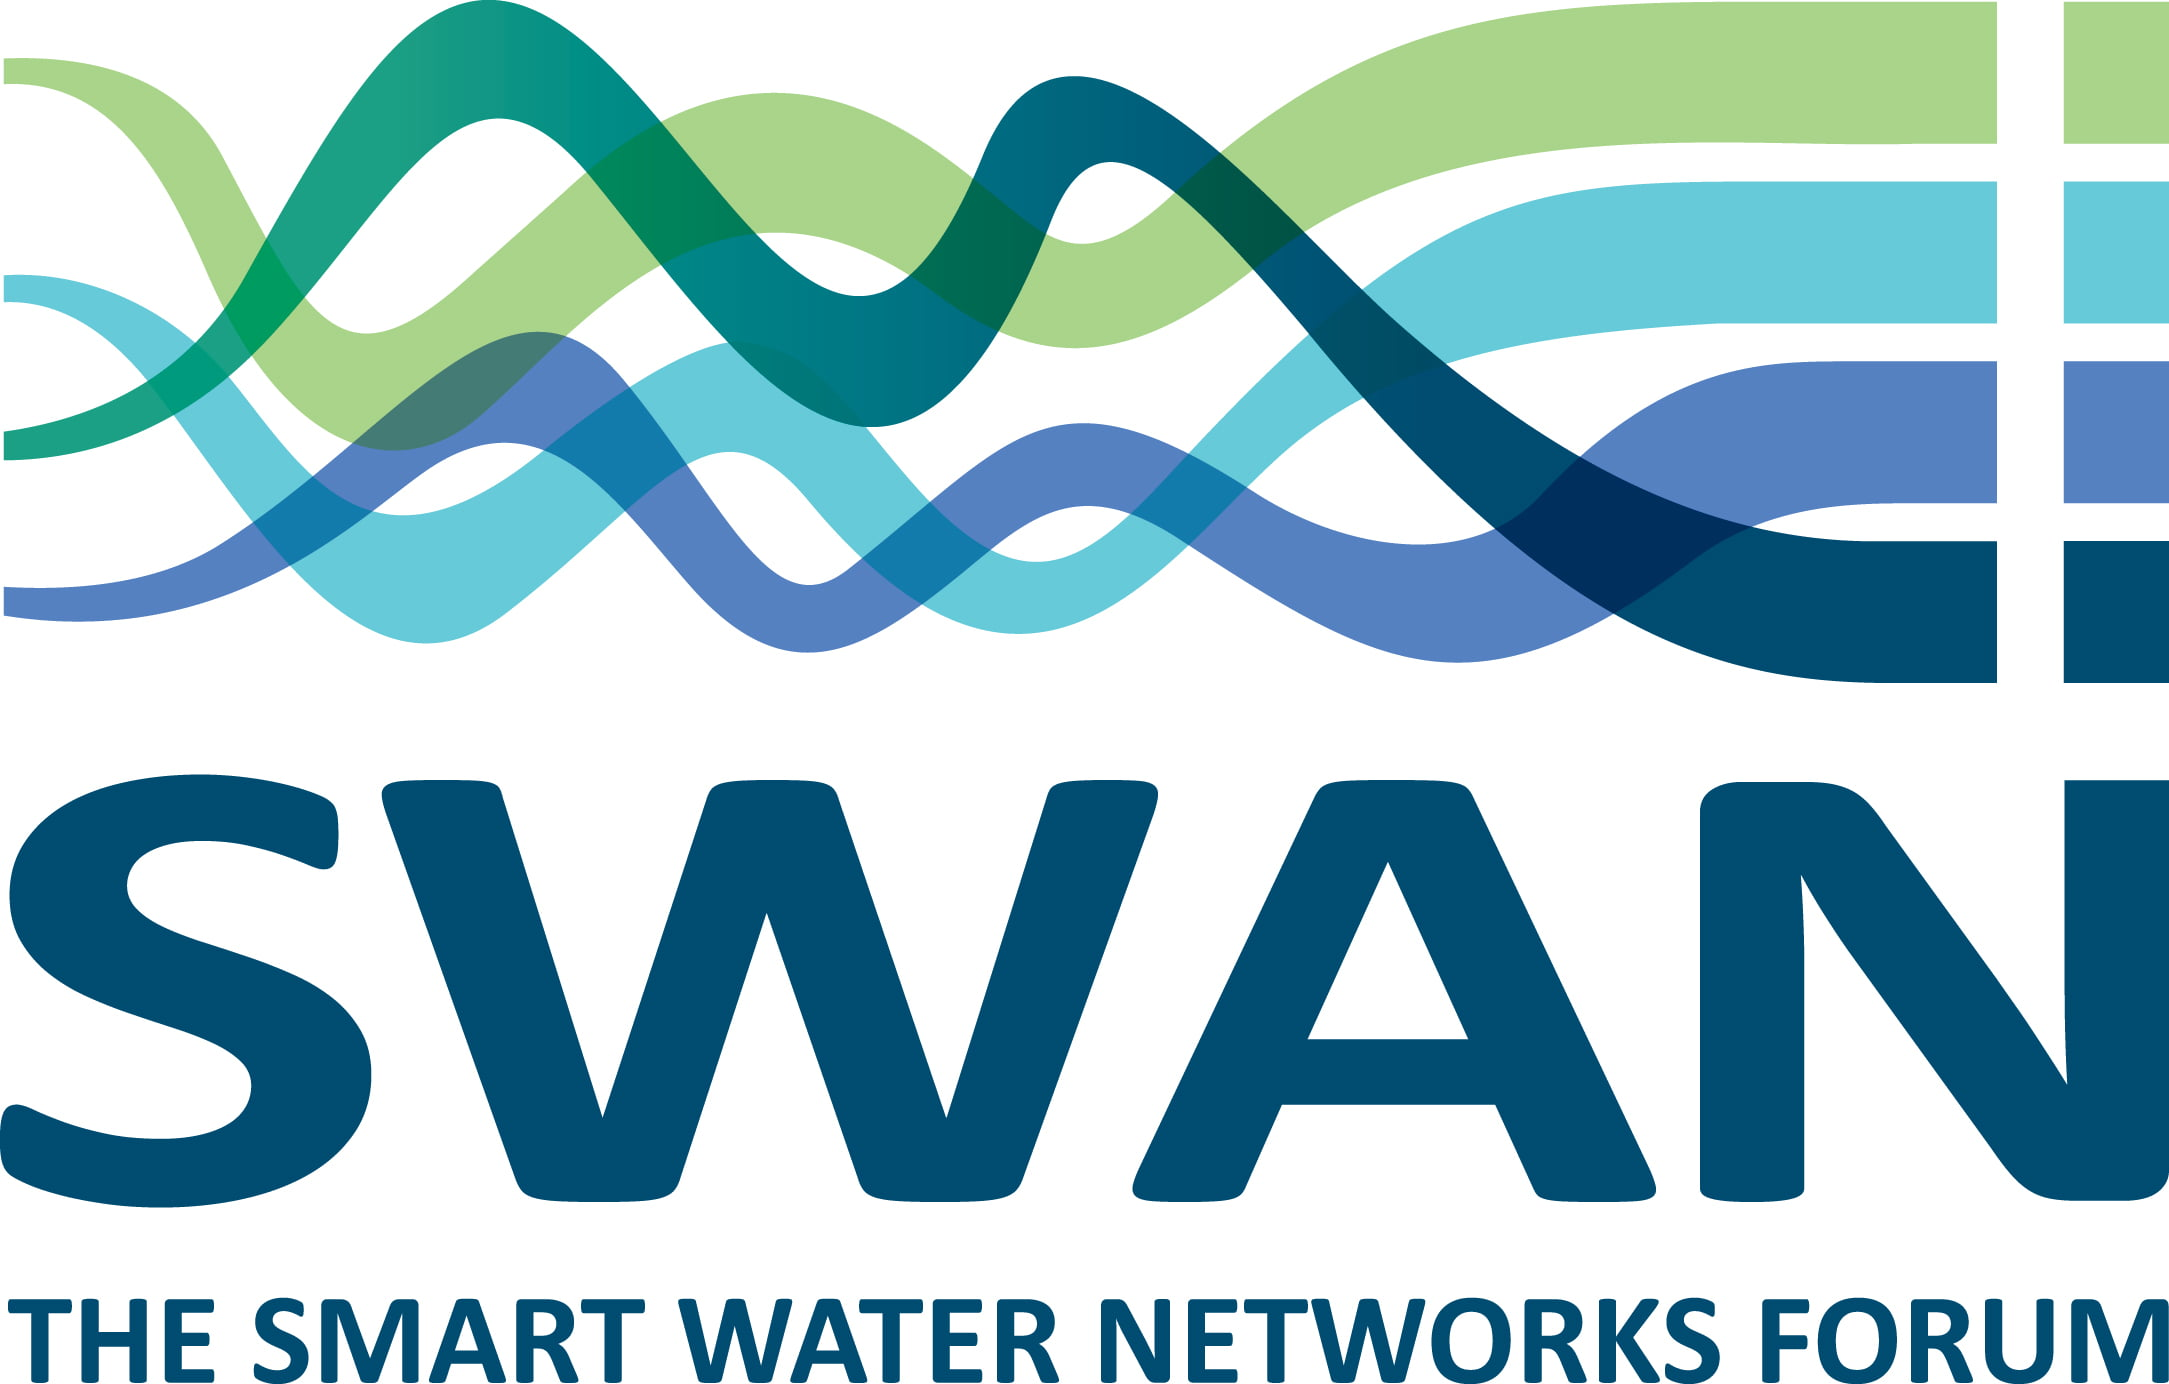 The SWAN Forum to Host Leading Global Smart Water Event in the US